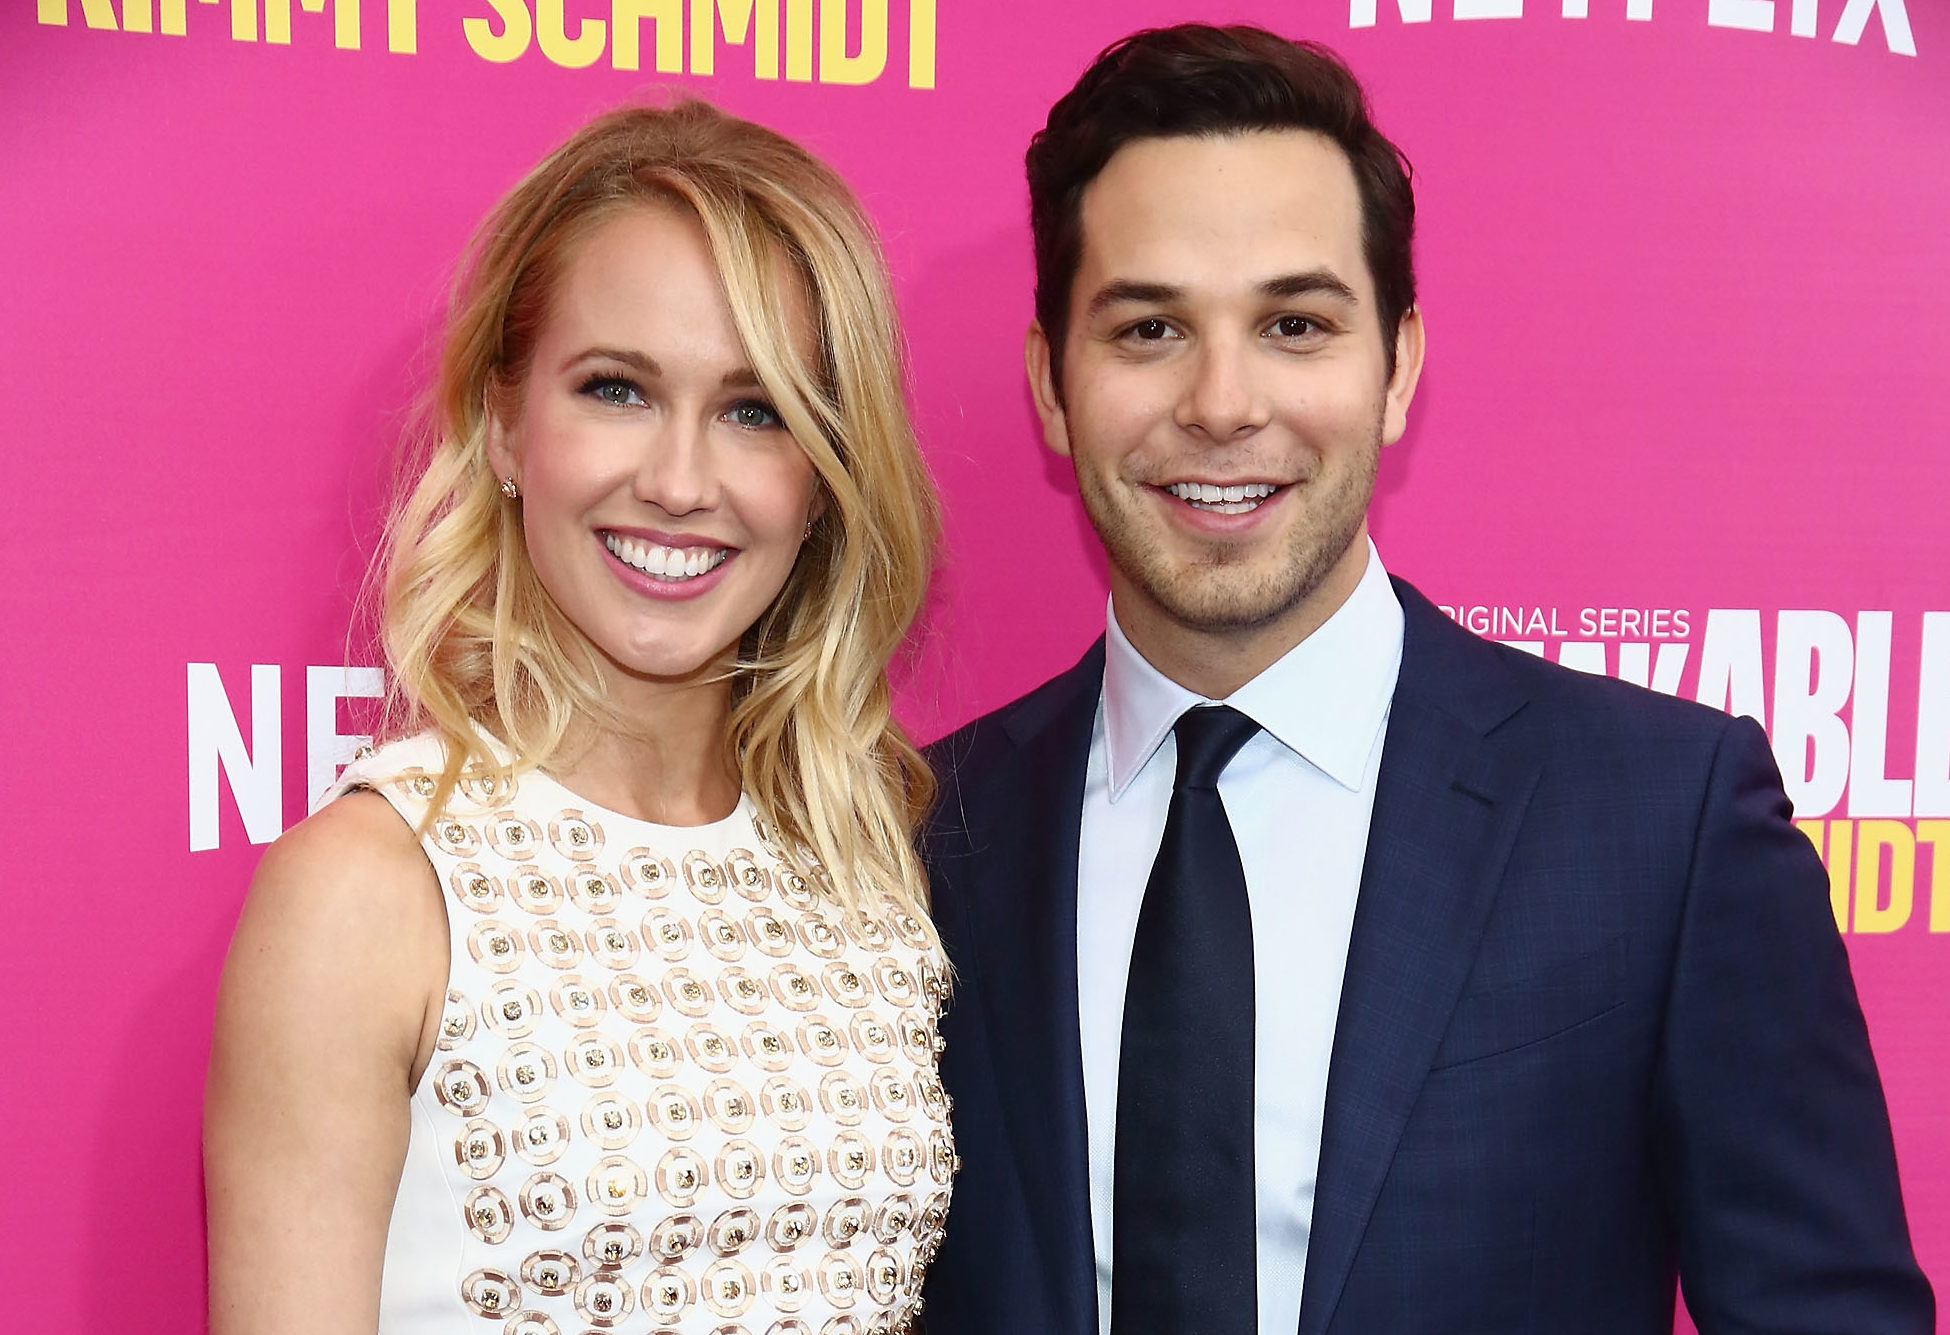 Anna Camp just shared more wedding photos, and they are even more beautiful than the ones we saw